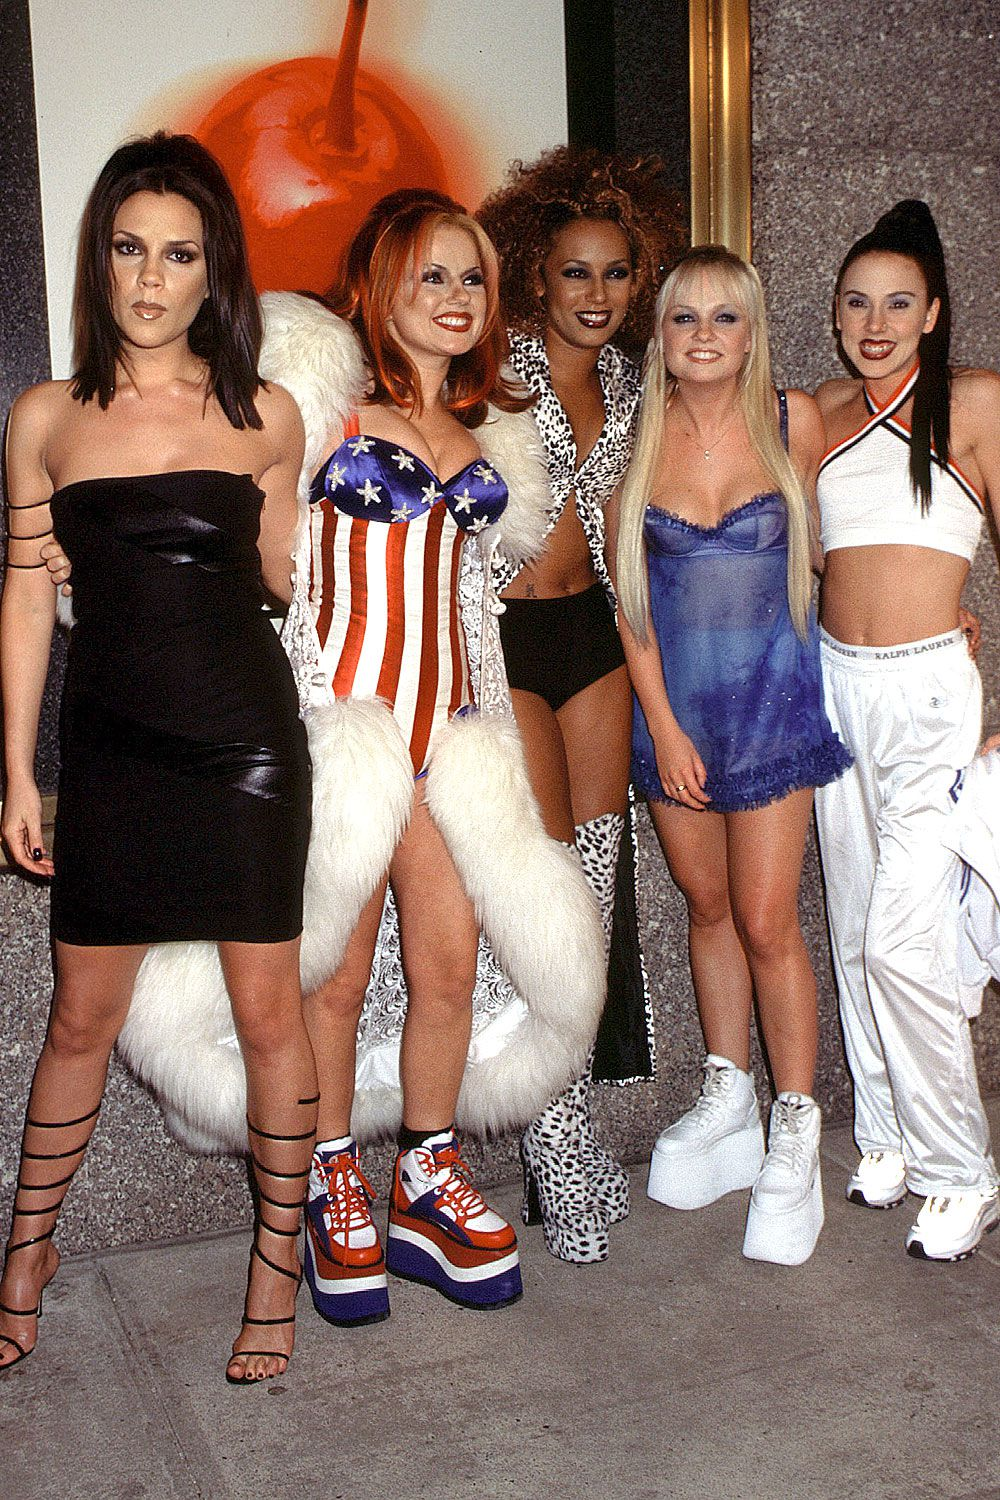 025-spice-girls.jpg